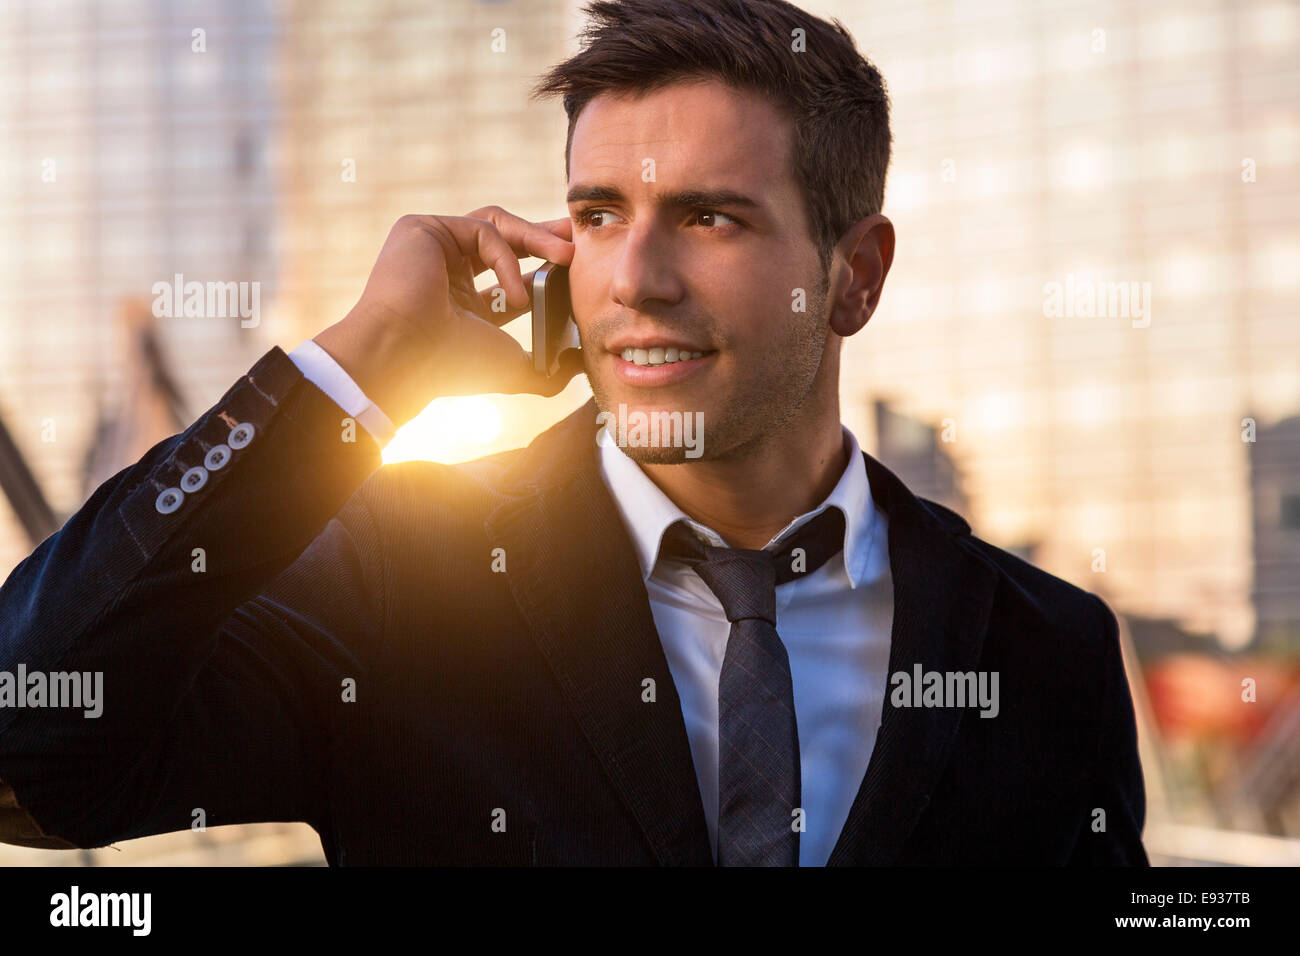 Businessman using mobile phone - Stock Image